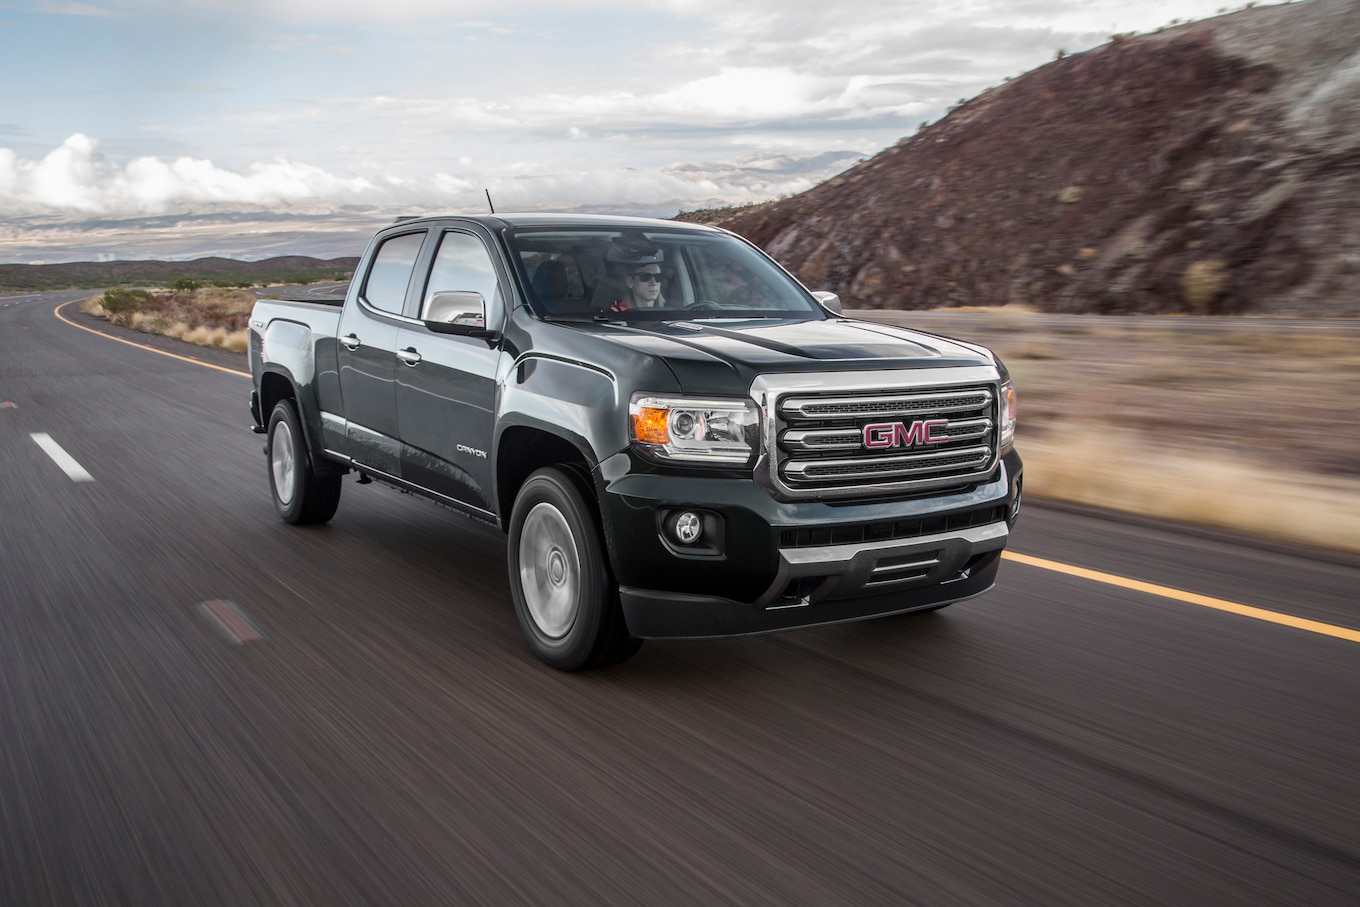 2012 Gmc Sierra Trailer Wiring Diagram Trusted Schematics Acadia Harness Best 2015 Canyon Image Collection 2007